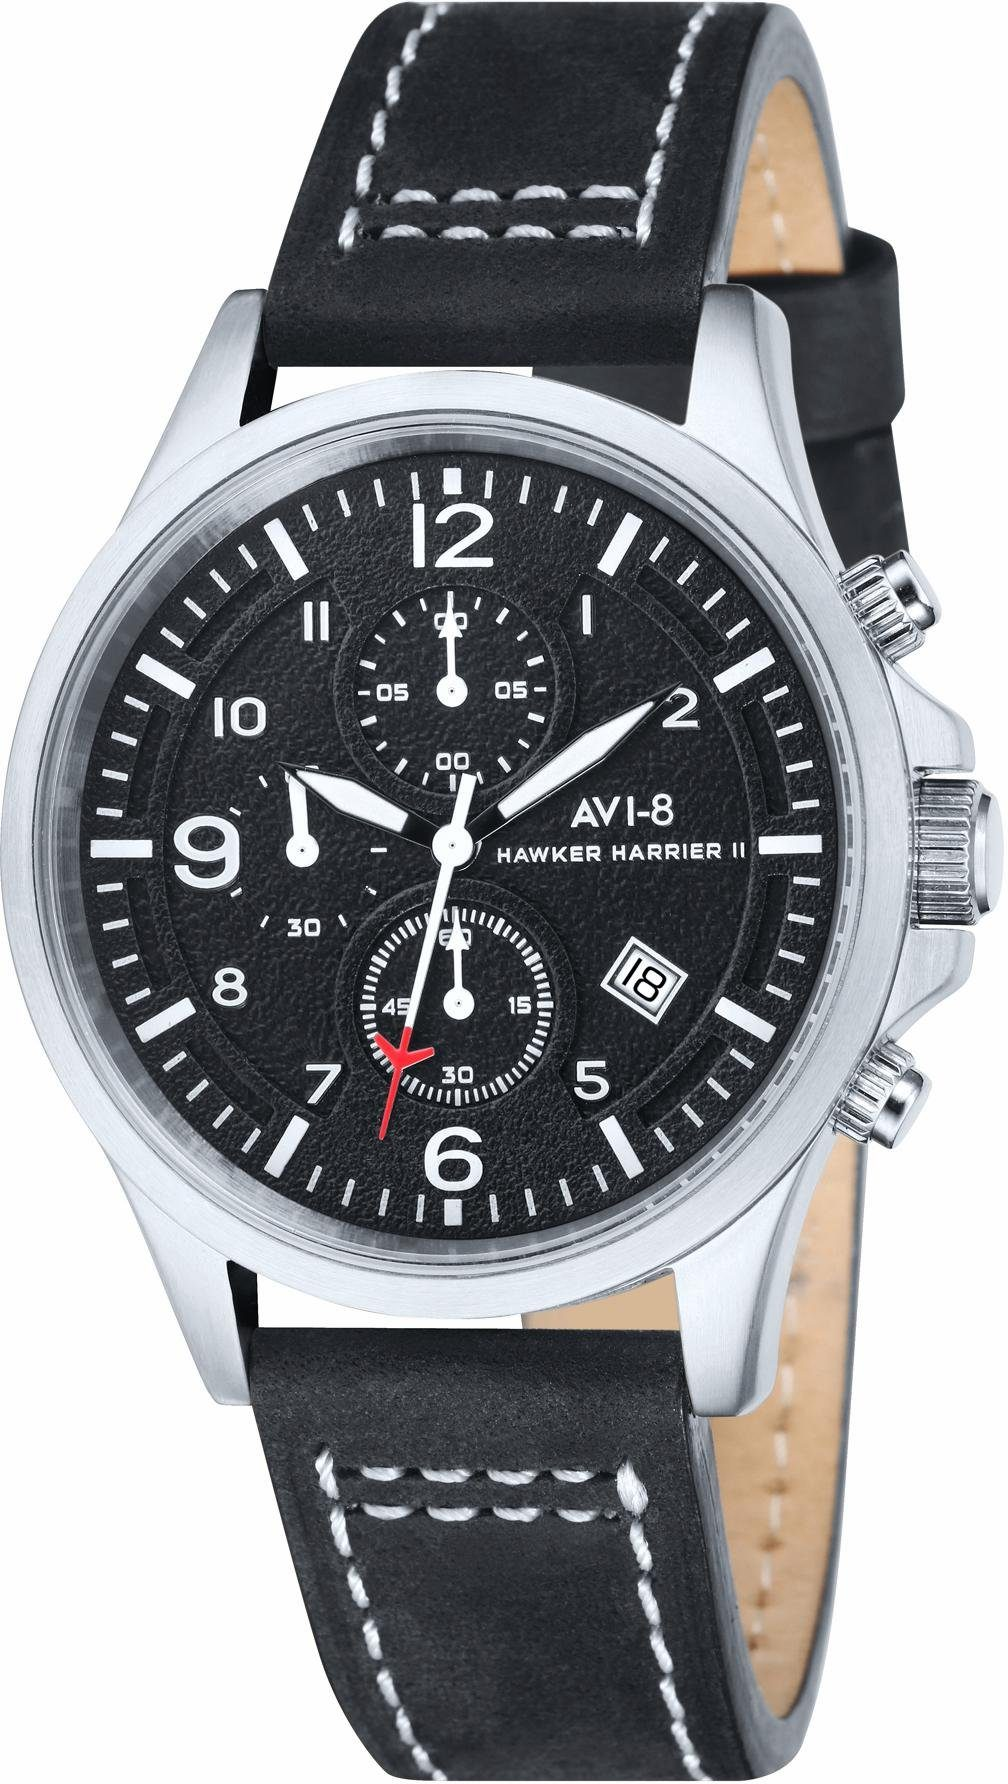 AVI-8 Chronograph »Hawker Harrier II, AV-4001-01«